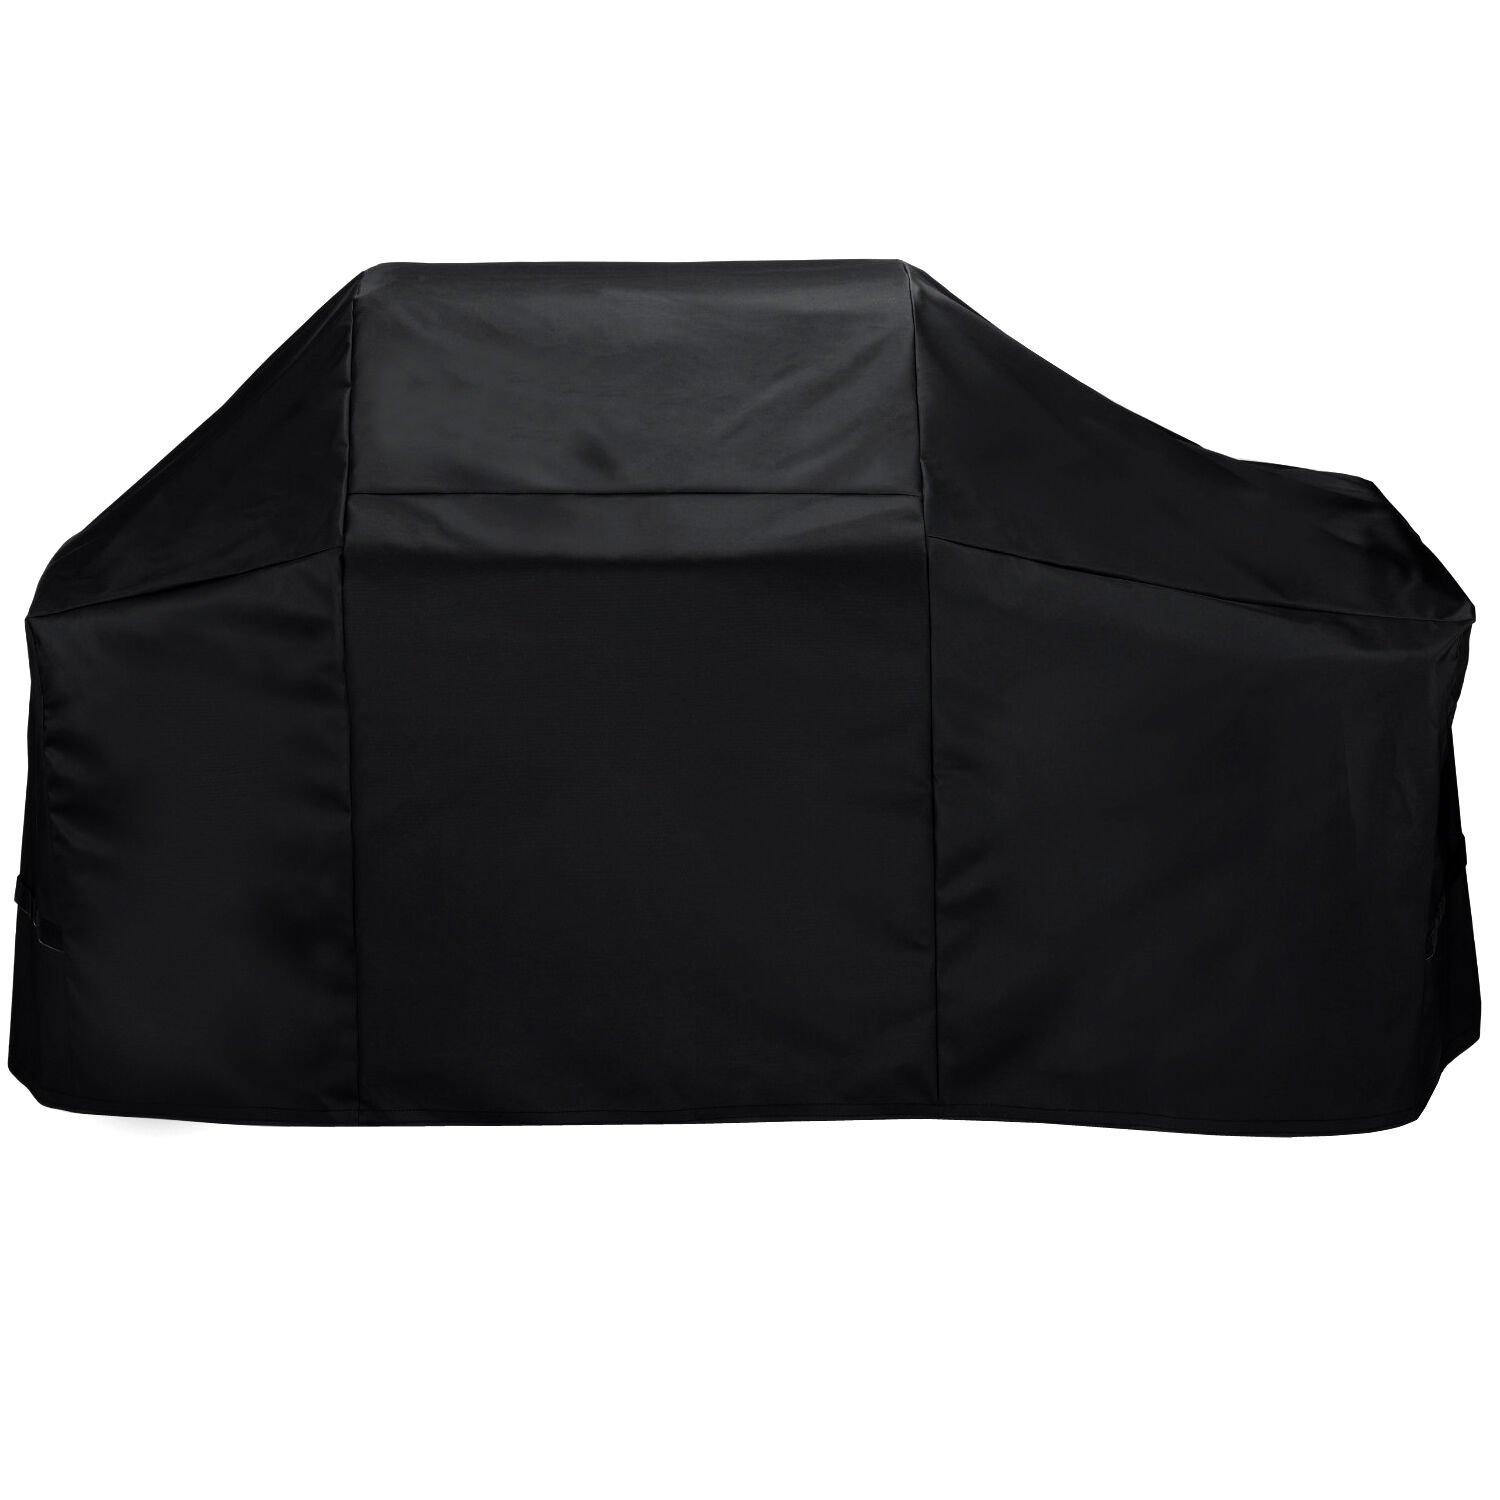 Replacement grill cover 7552 for Weber Genesis Silver C,